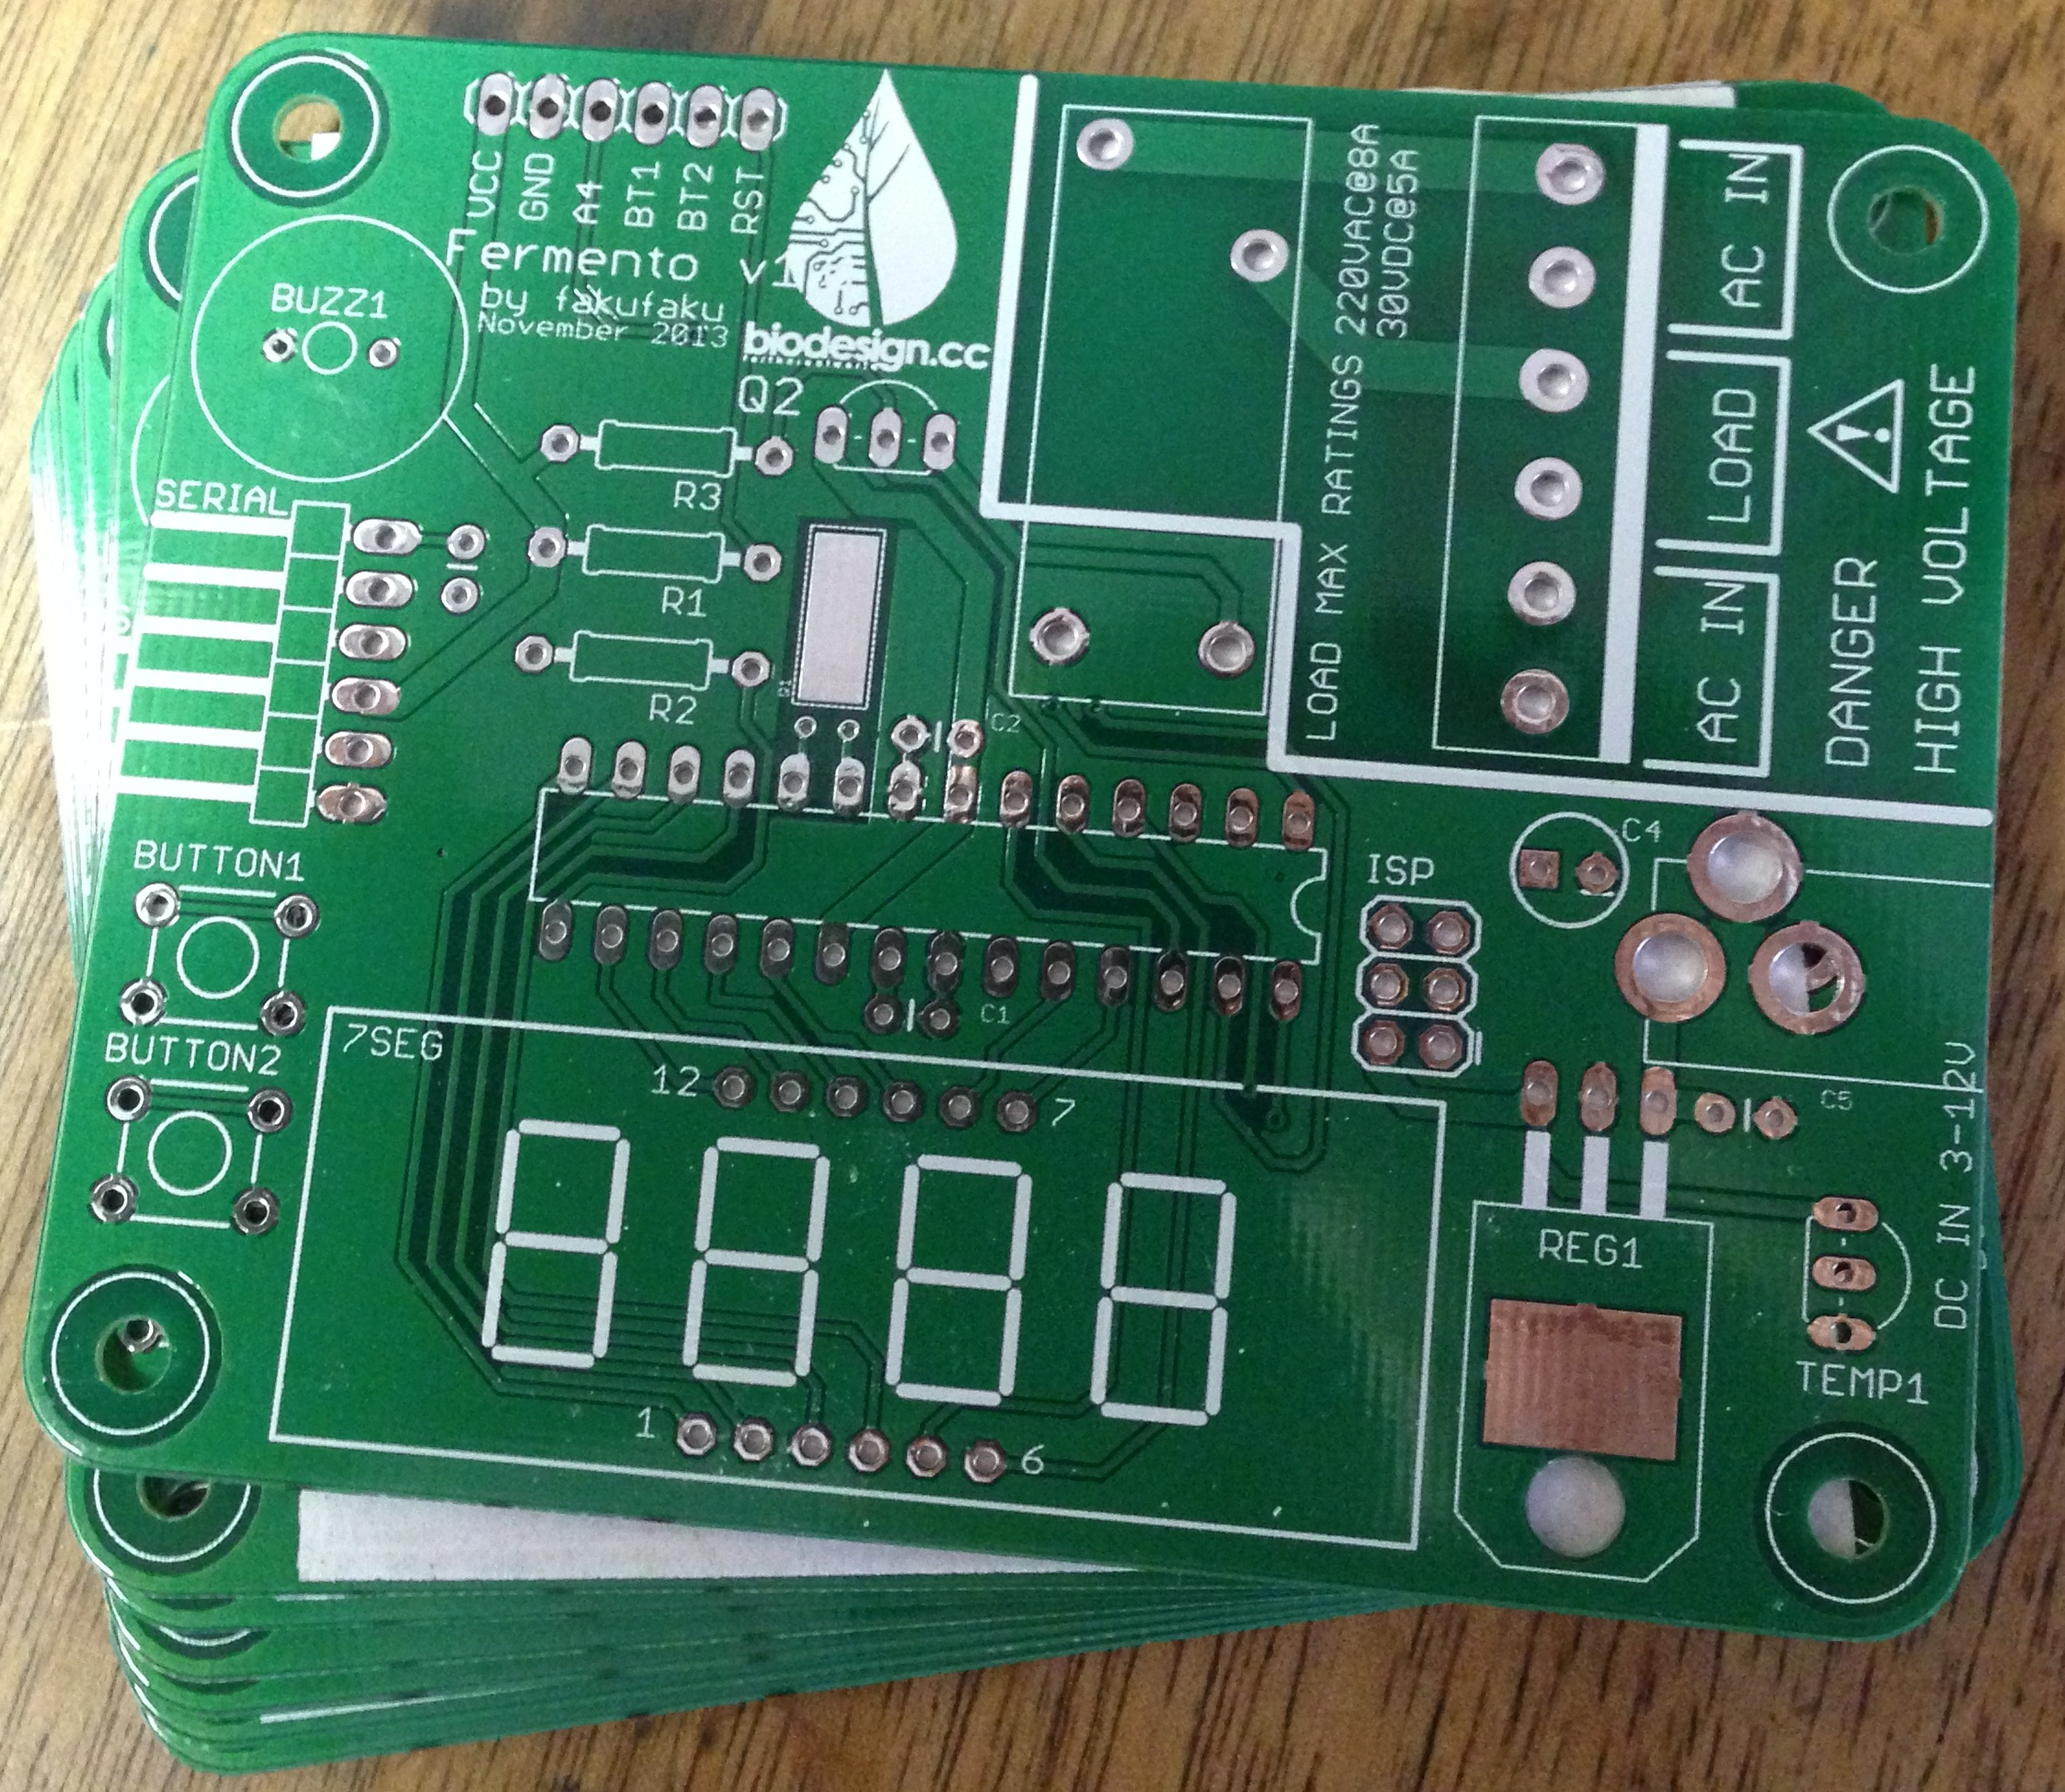 Diy Incubator Biodesign For The Real World 15 July 2014 Etching Of Printed Circuit Boards Pcb 2013 12 21 110619